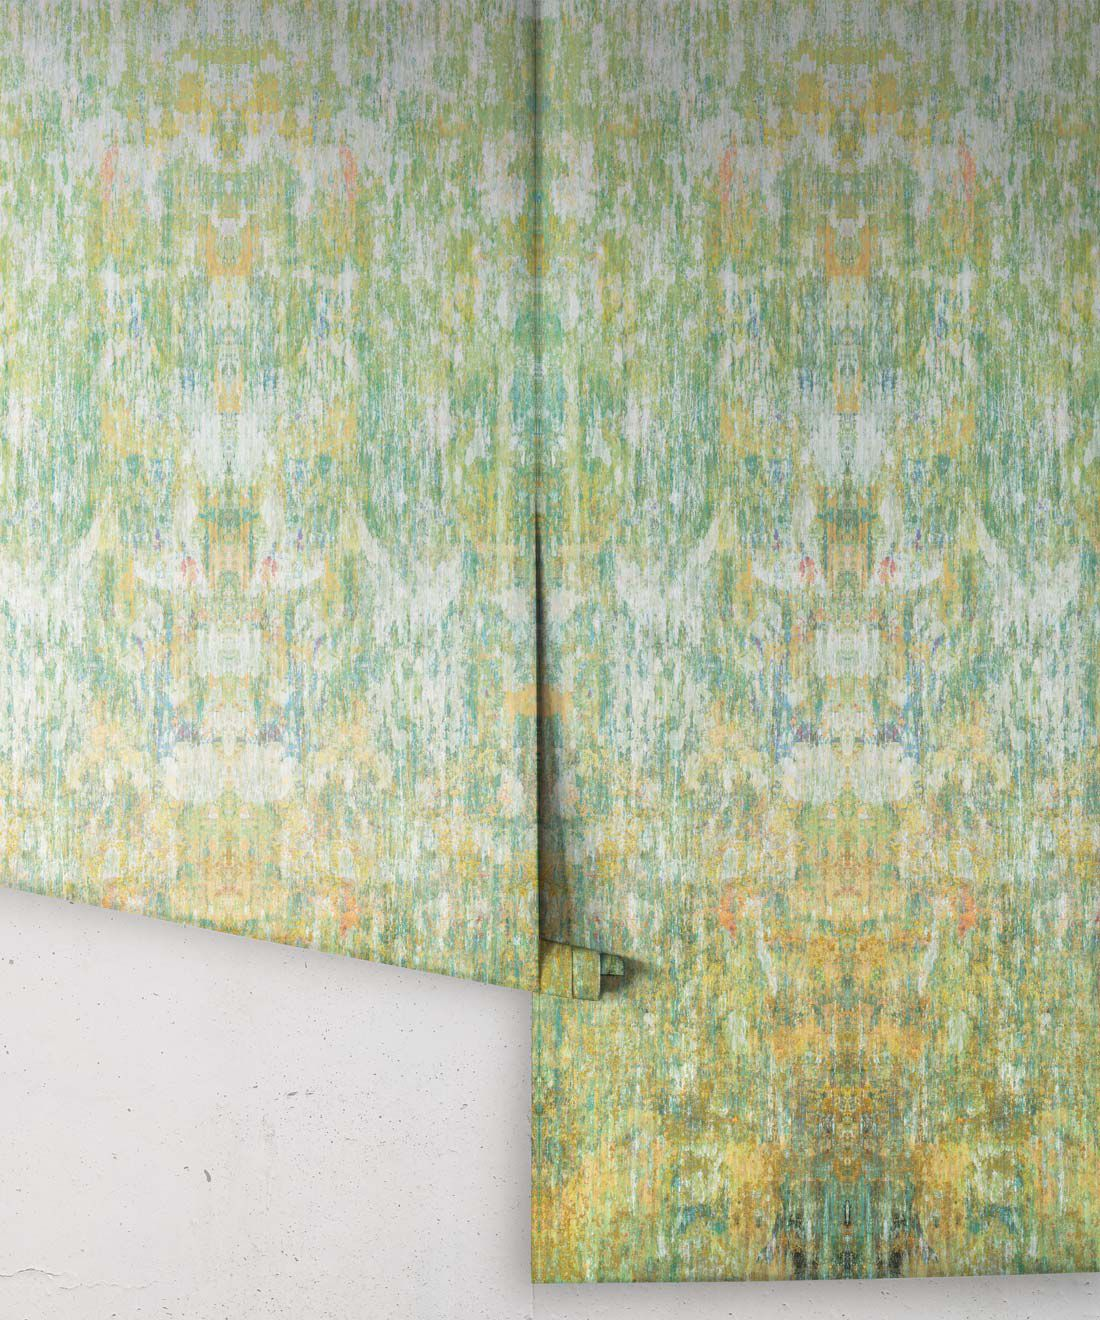 Patina Wallpaper by Simcox • Color Moss • Abstract Wallpaper • rolls